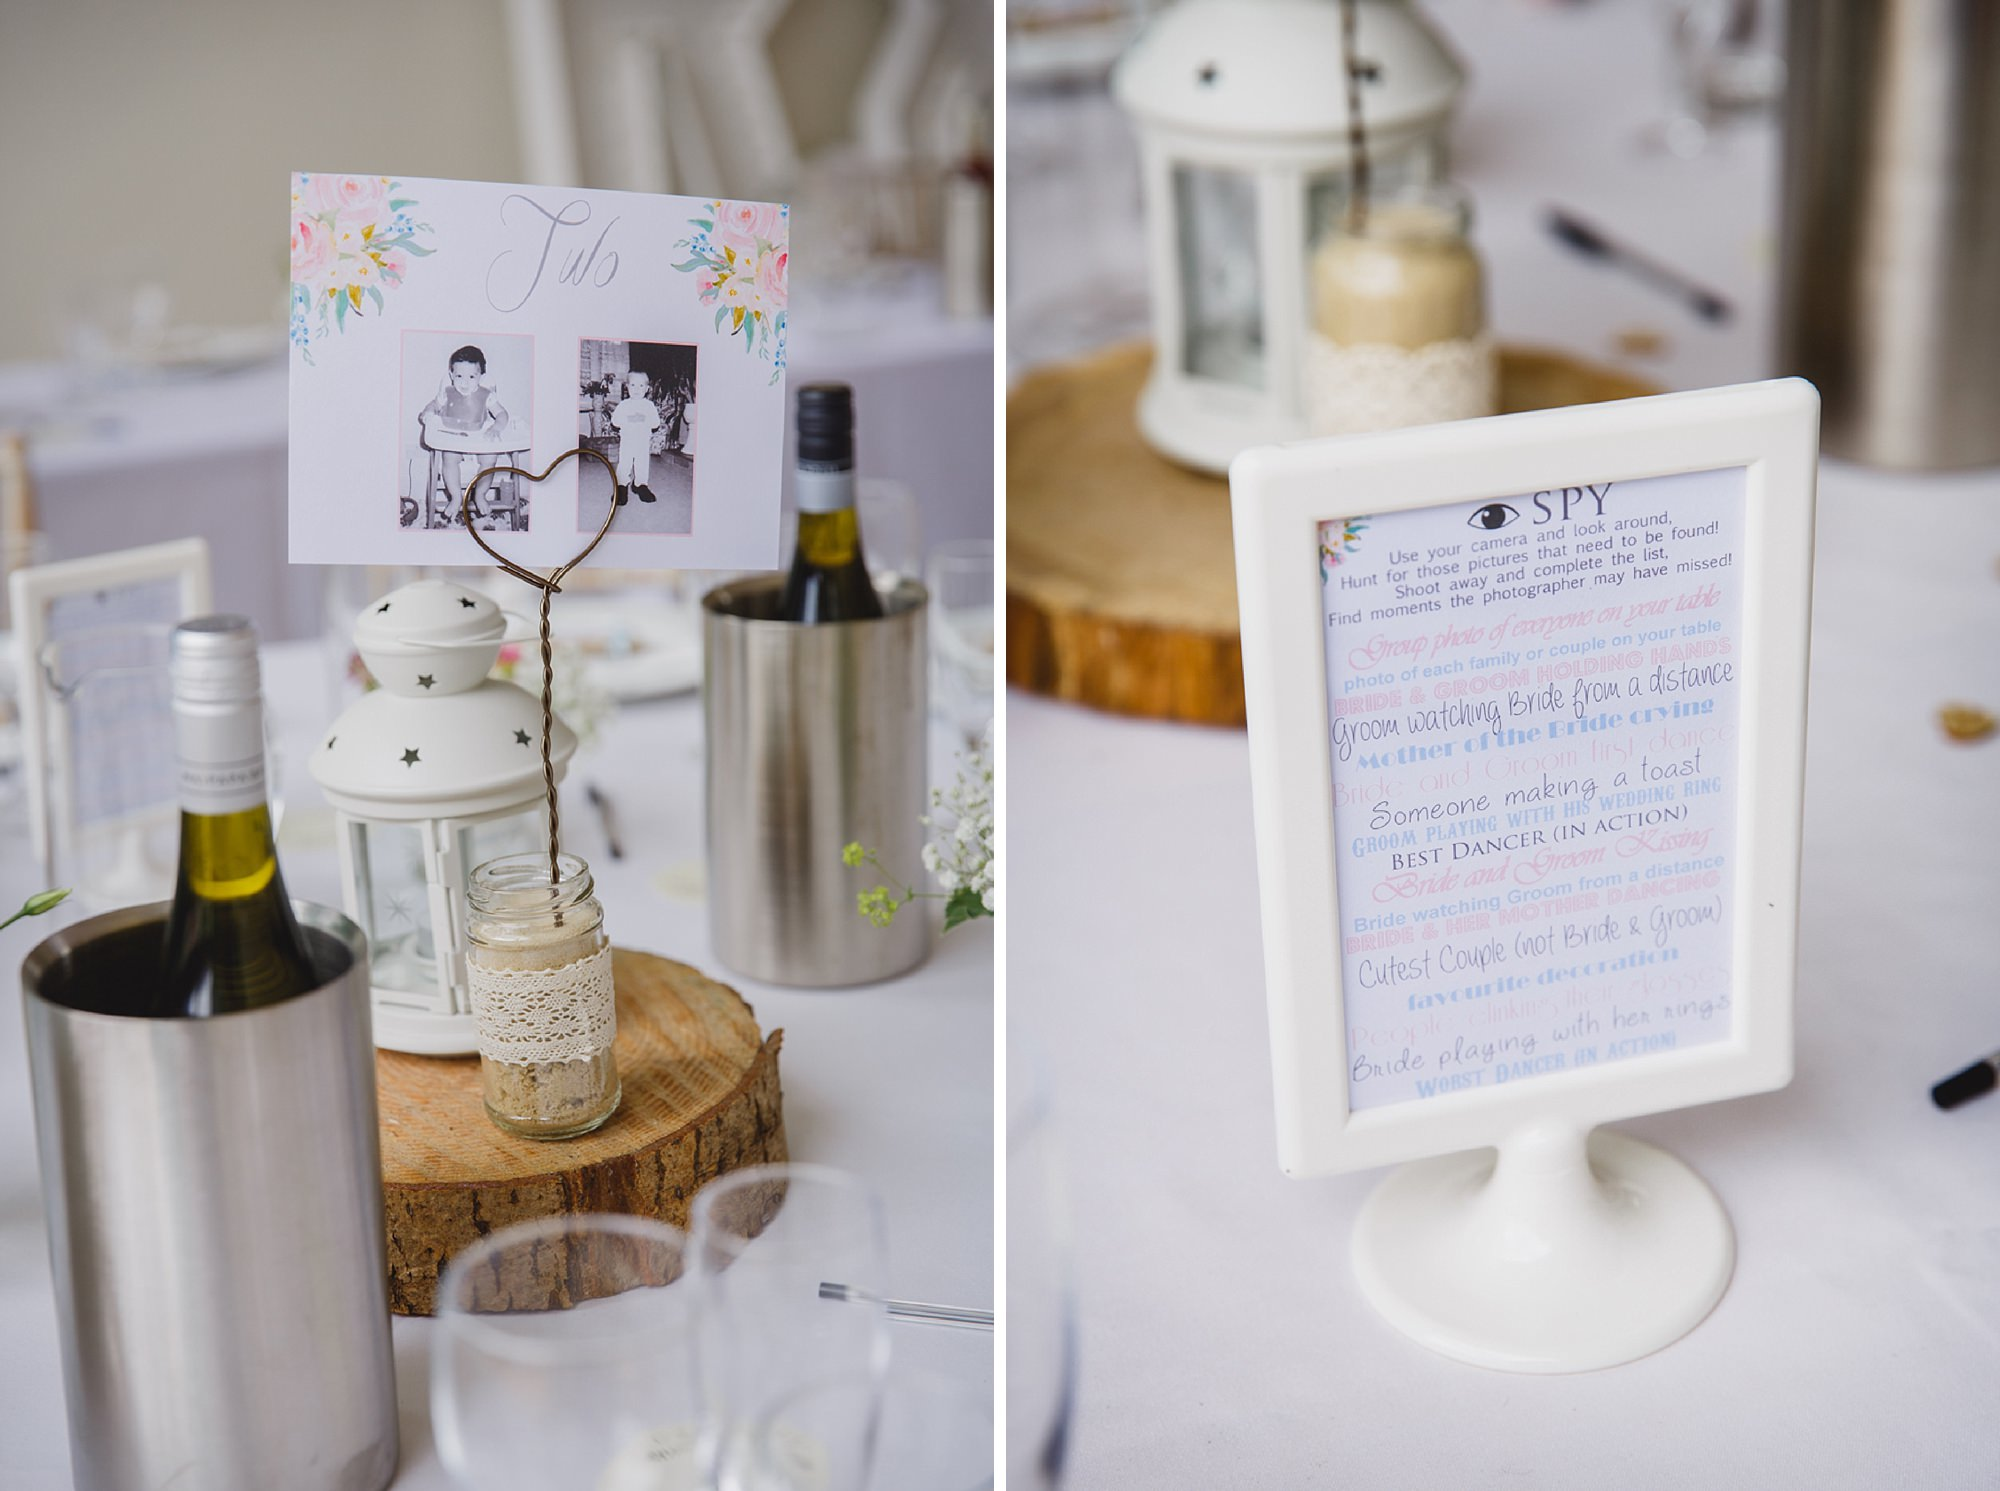 Bignor Park wedding photography table decoration